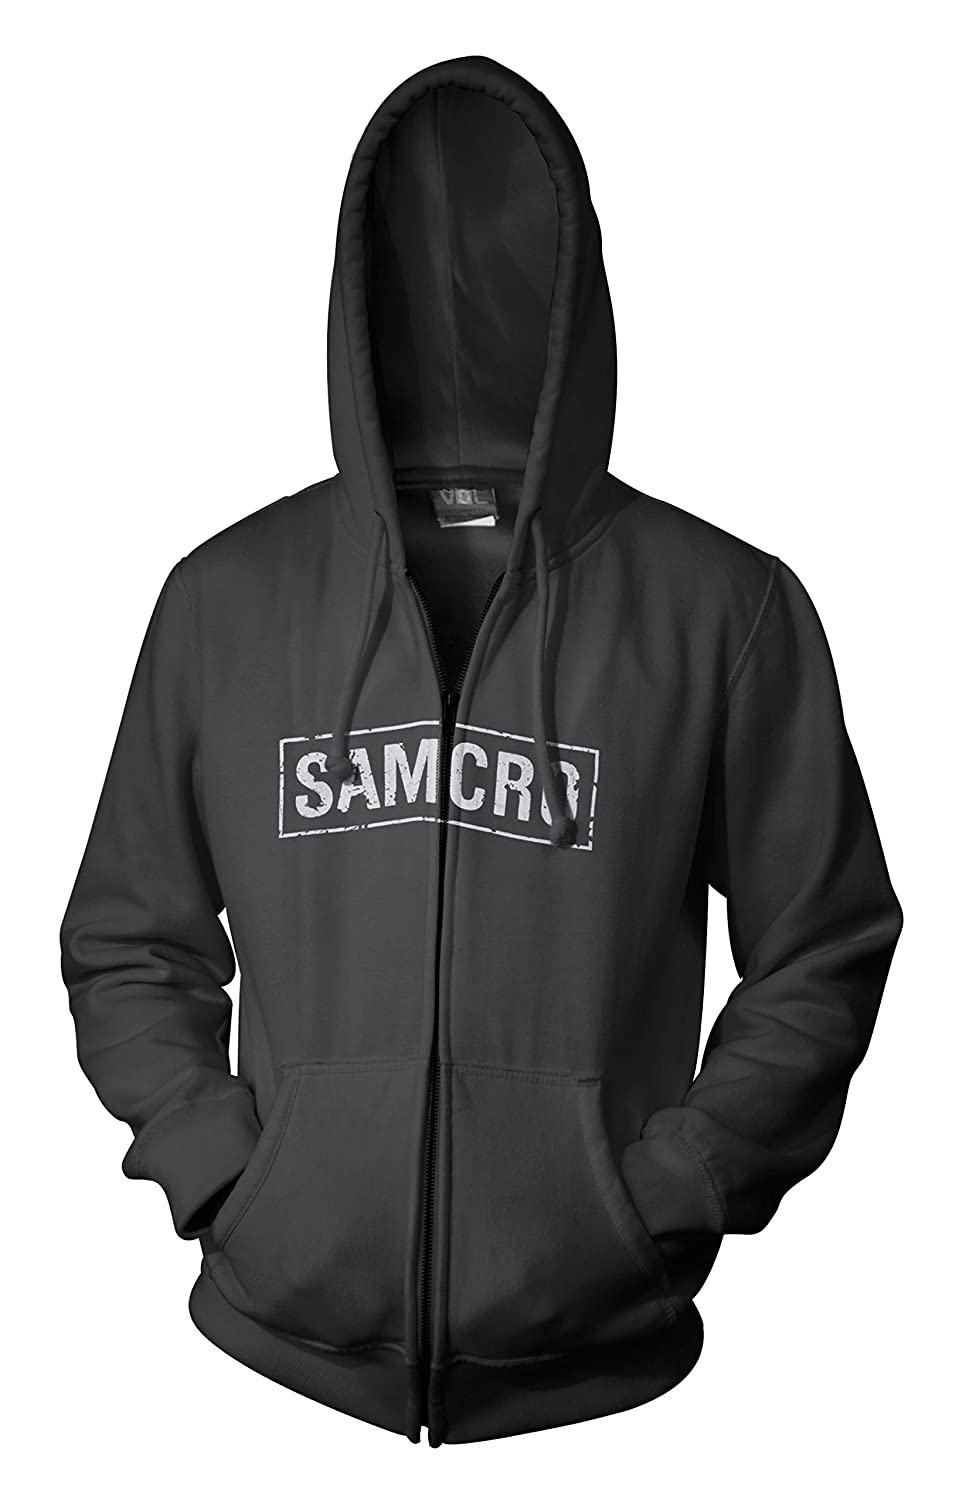 Sons Of Anarchy Samcro Logo Mens Black Zip-Up Hoodie Sweatshirt Toy Zany